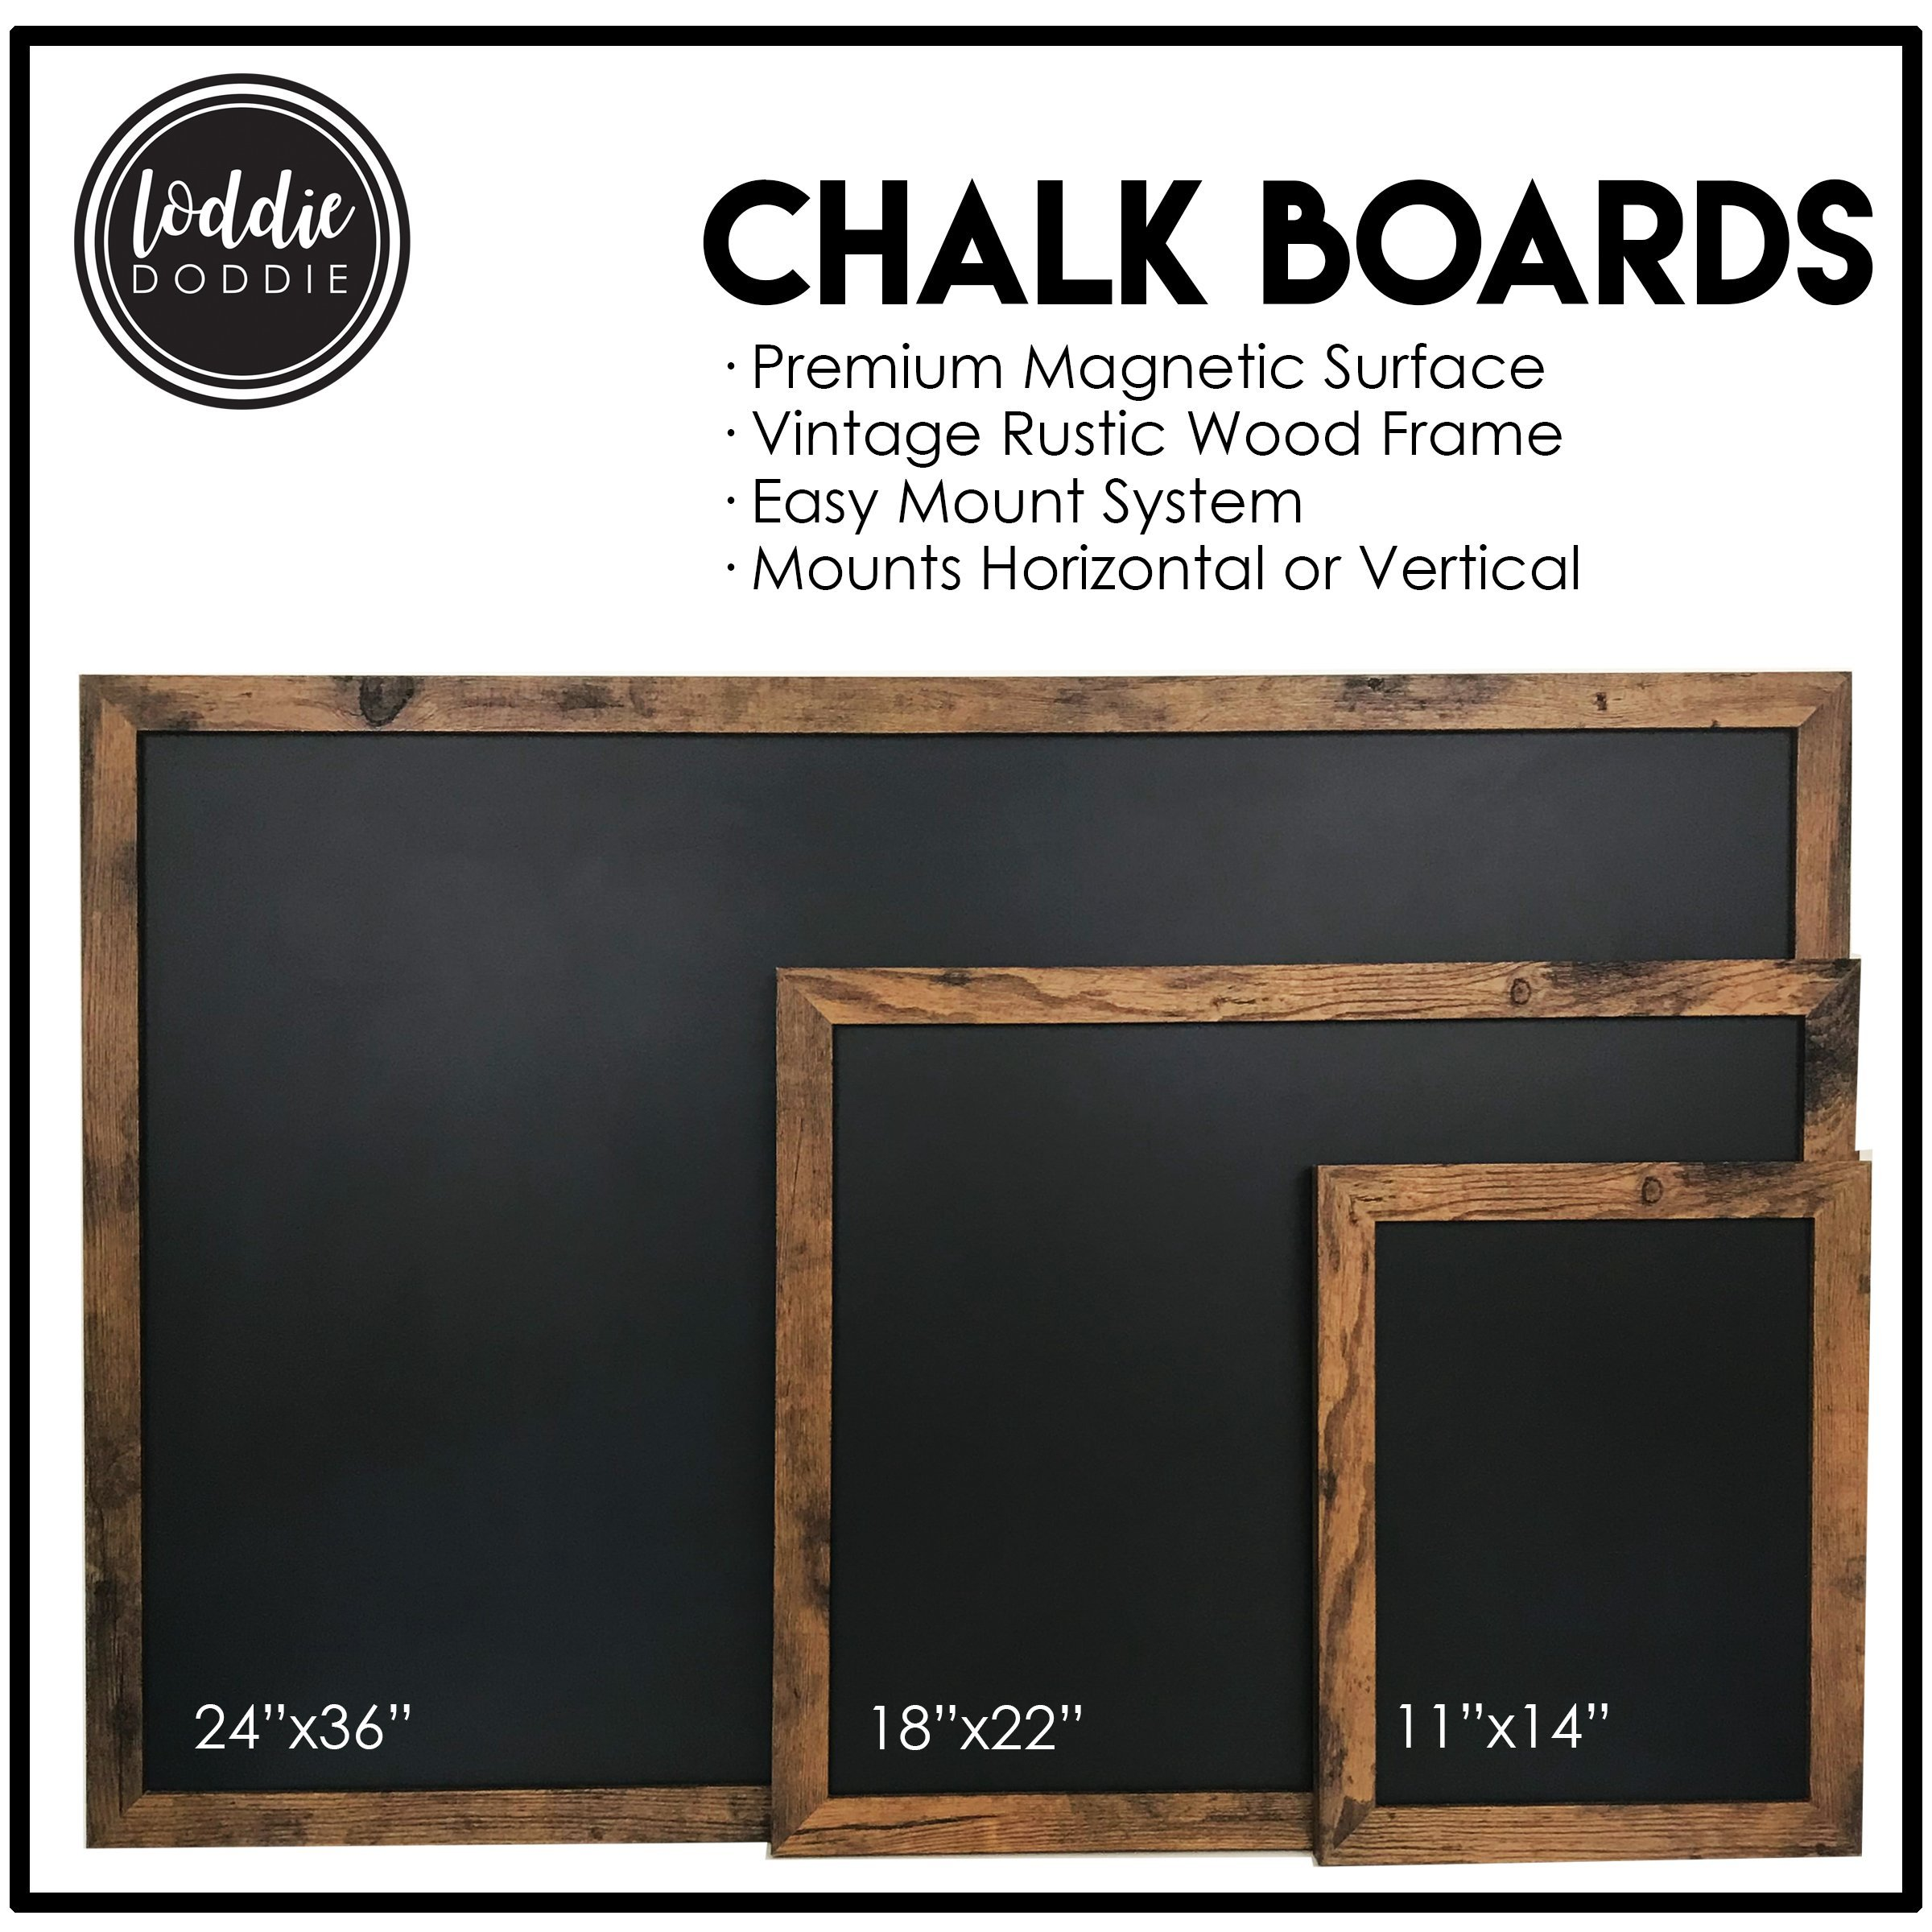 Loddie Doddie 10ct Chalk Markers- Earth Tones for use on Chalk, Dry Erase and Glass surfaces and more! by Loddie Doddie (Image #5)